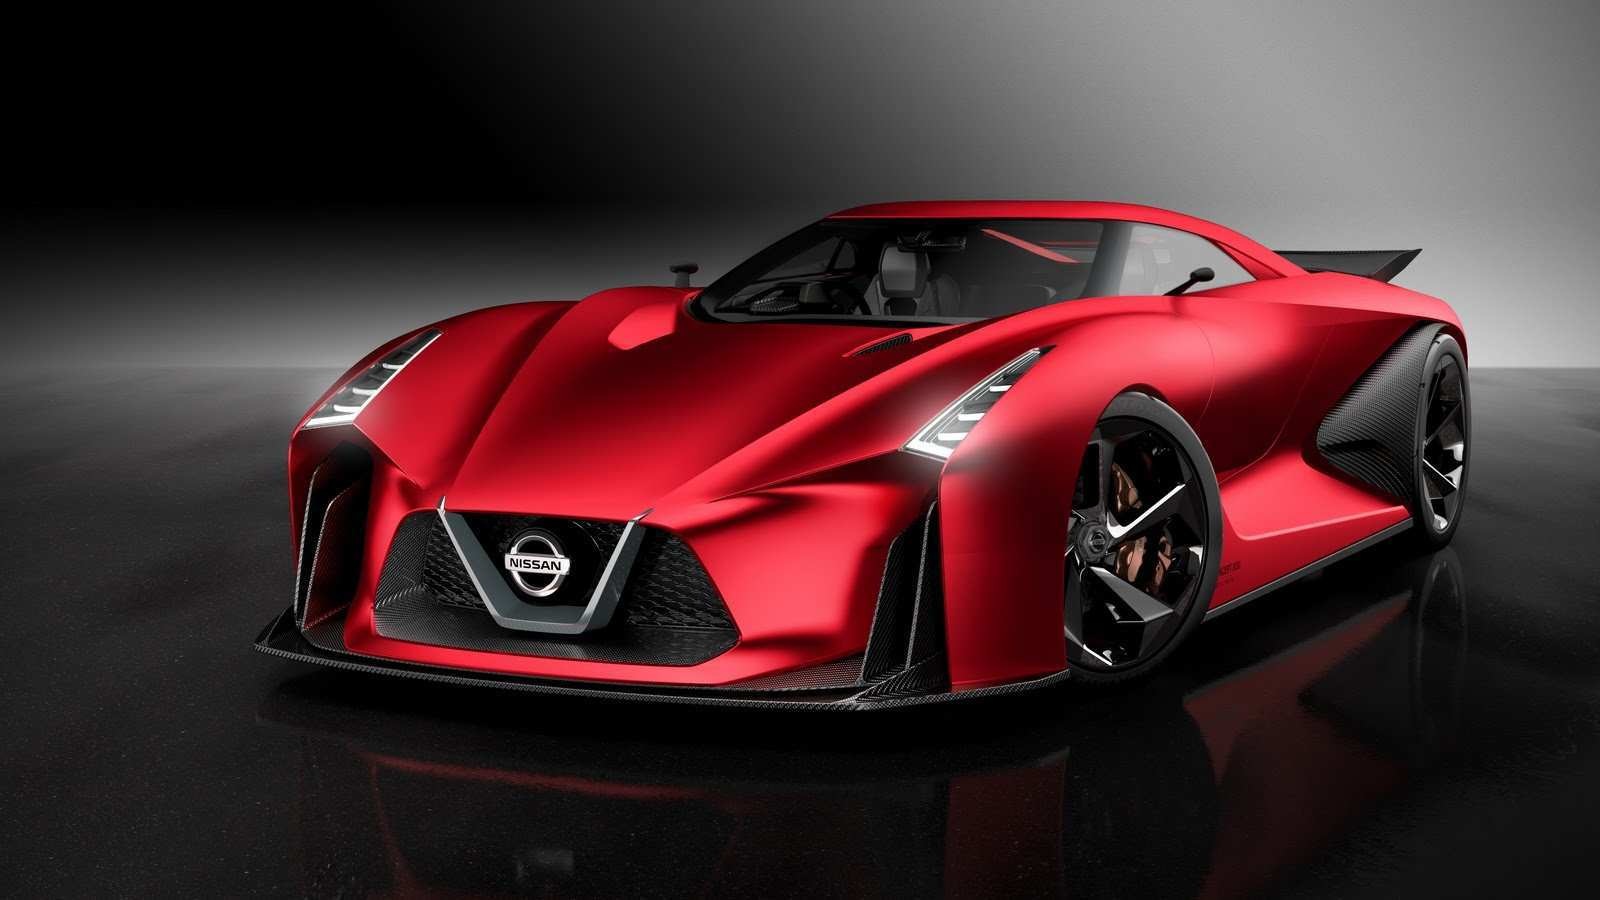 69 All New Nissan Concept 2020 Price In India Redesign